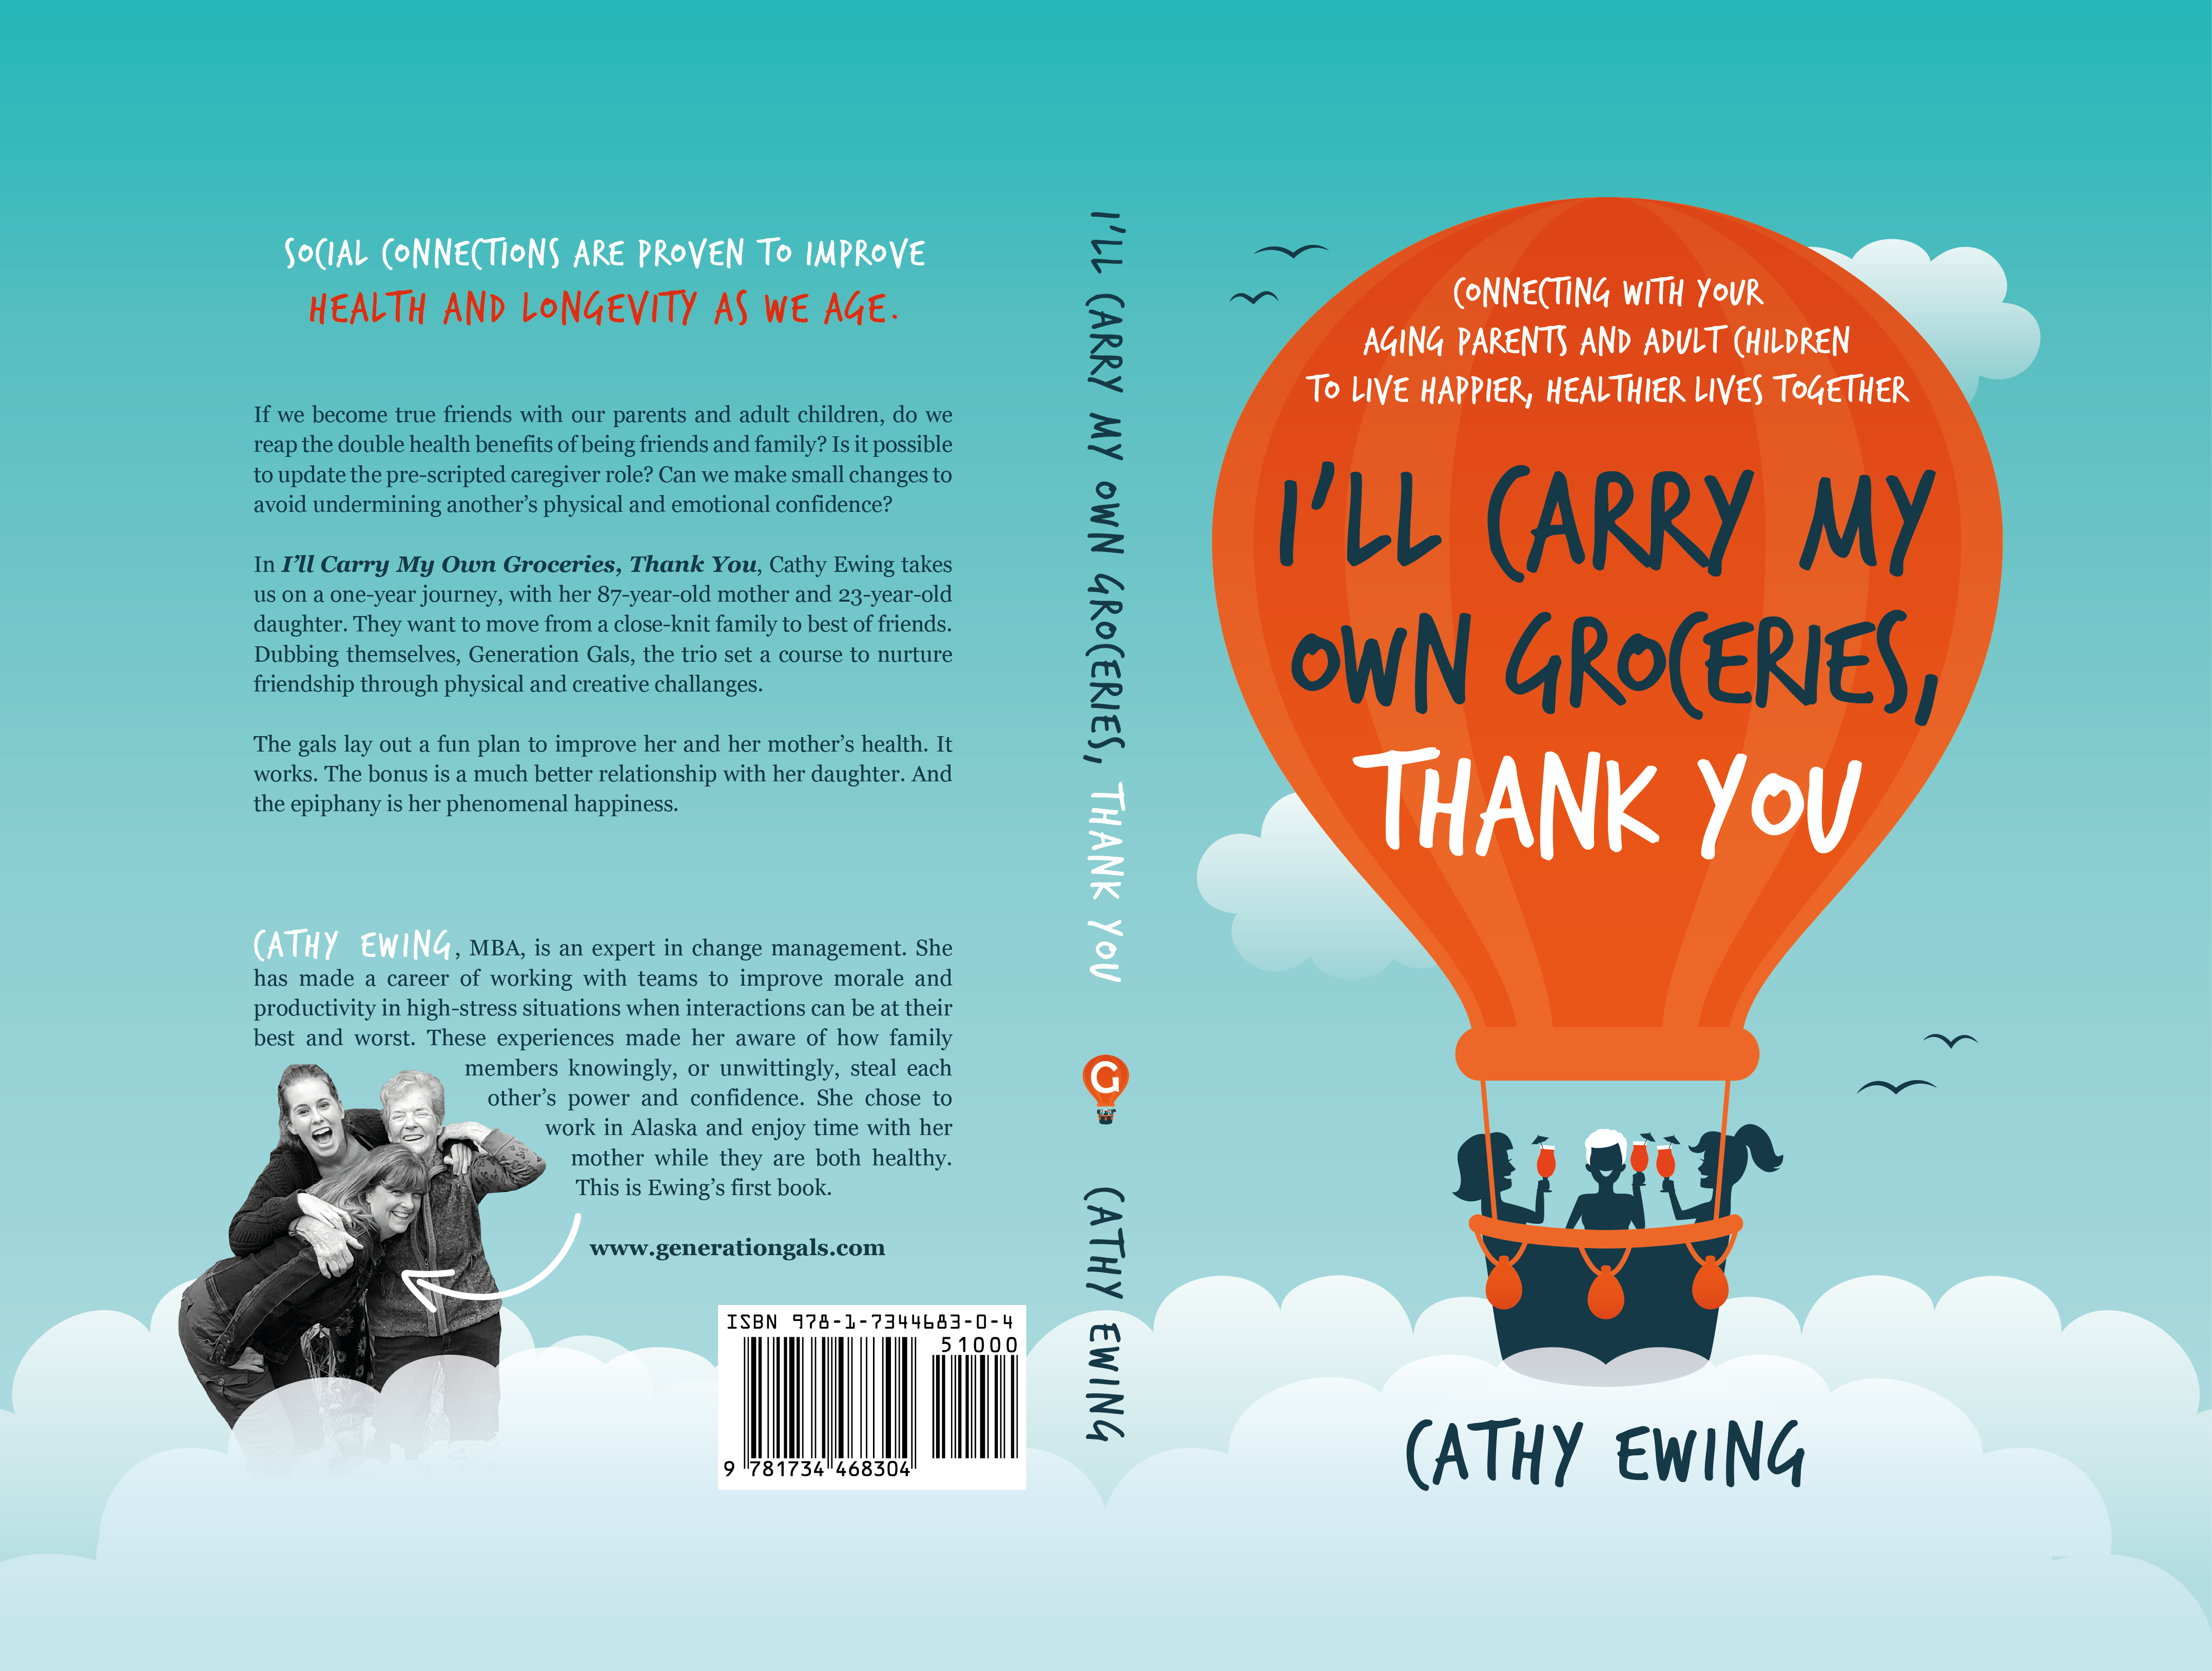 Don't we all have parents? And oh yes, kids. Fun women's communication book - first in a series!